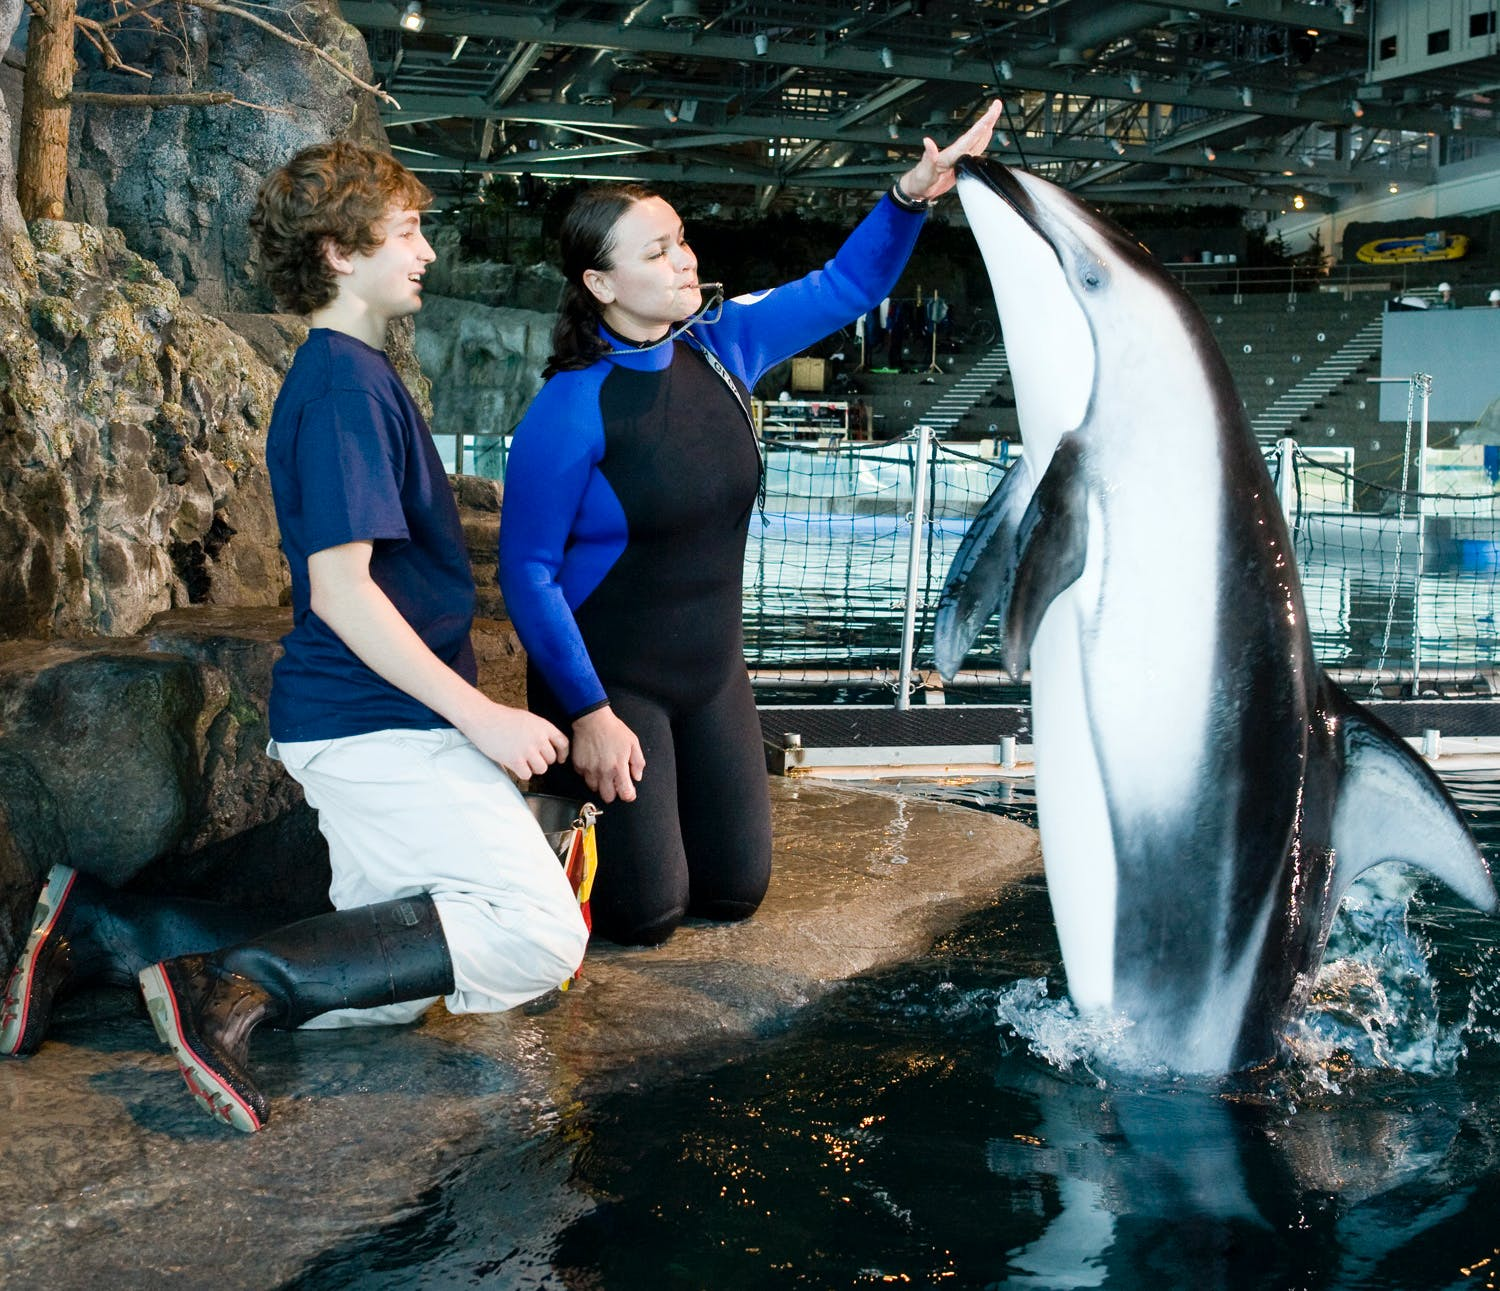 dolphin trainer day shedd aquarium chicago experience gifts